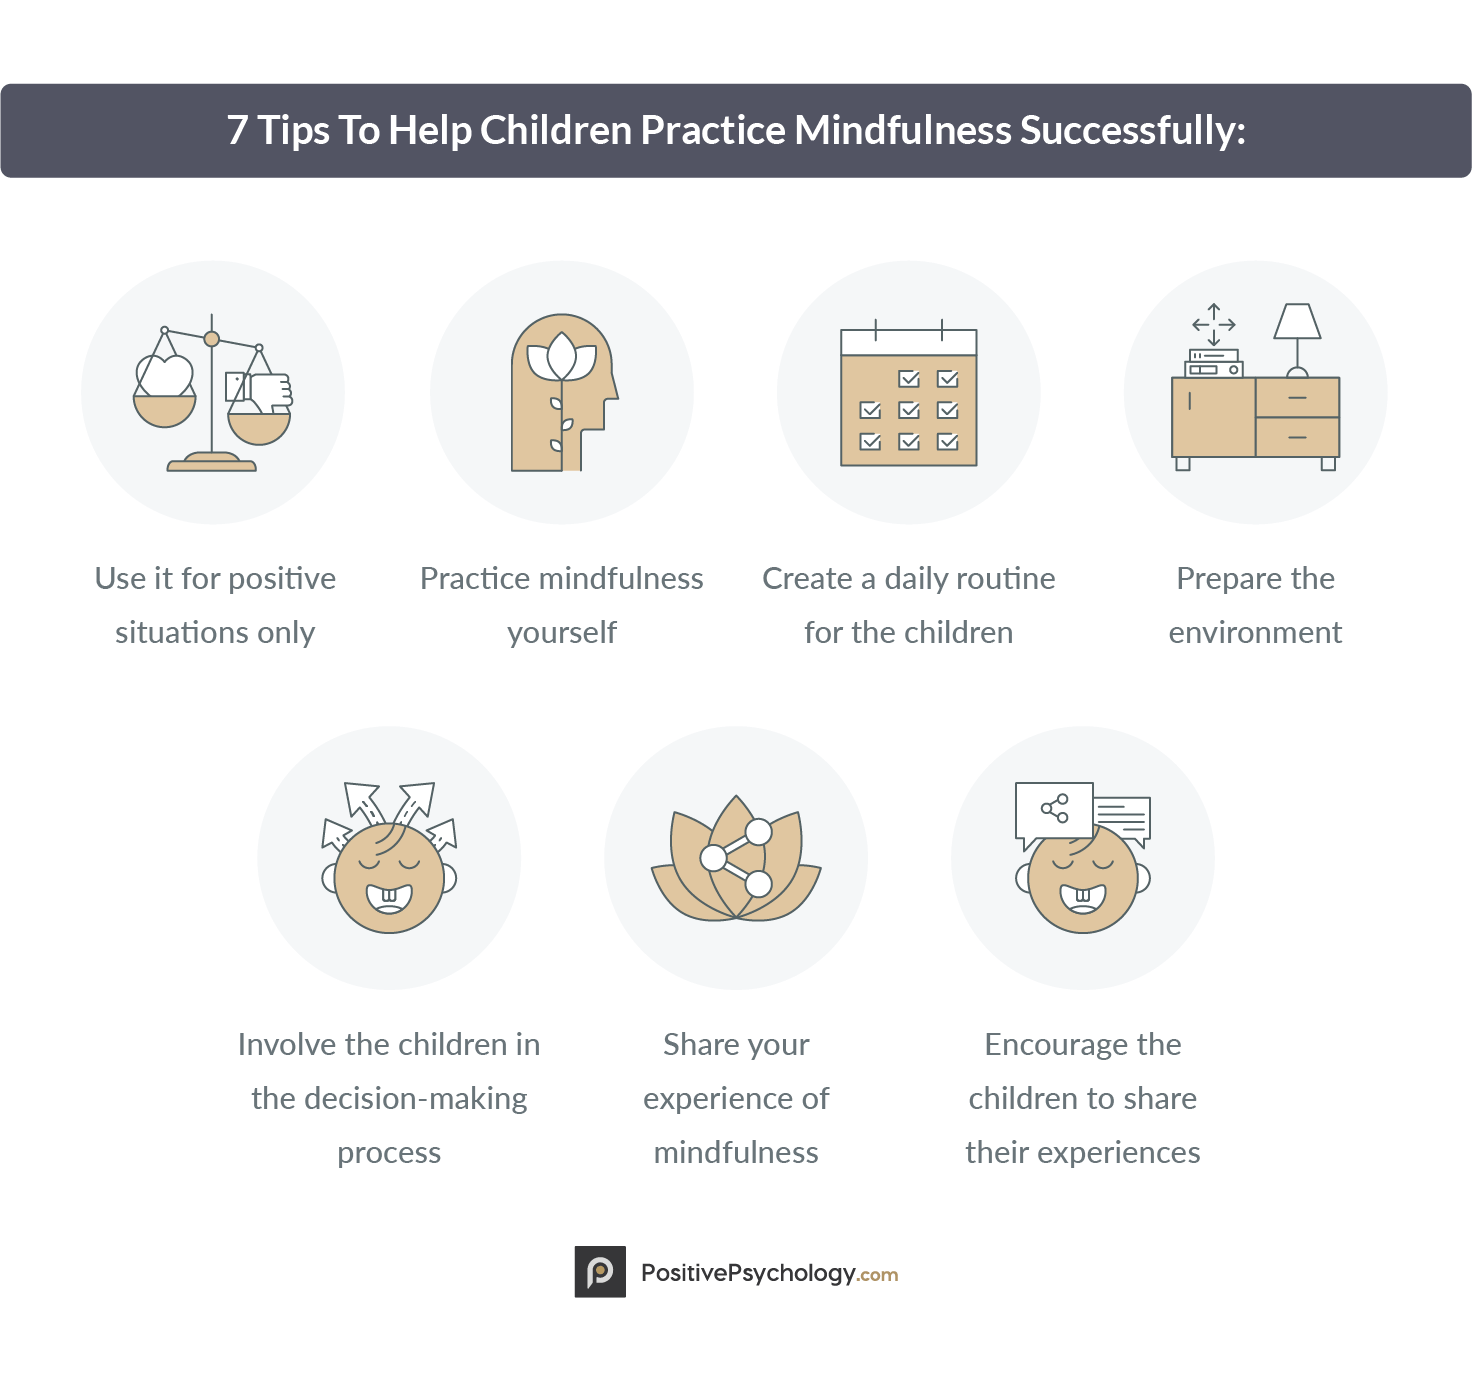 7 Tips To Help Children Practice Mindfulness Successfully